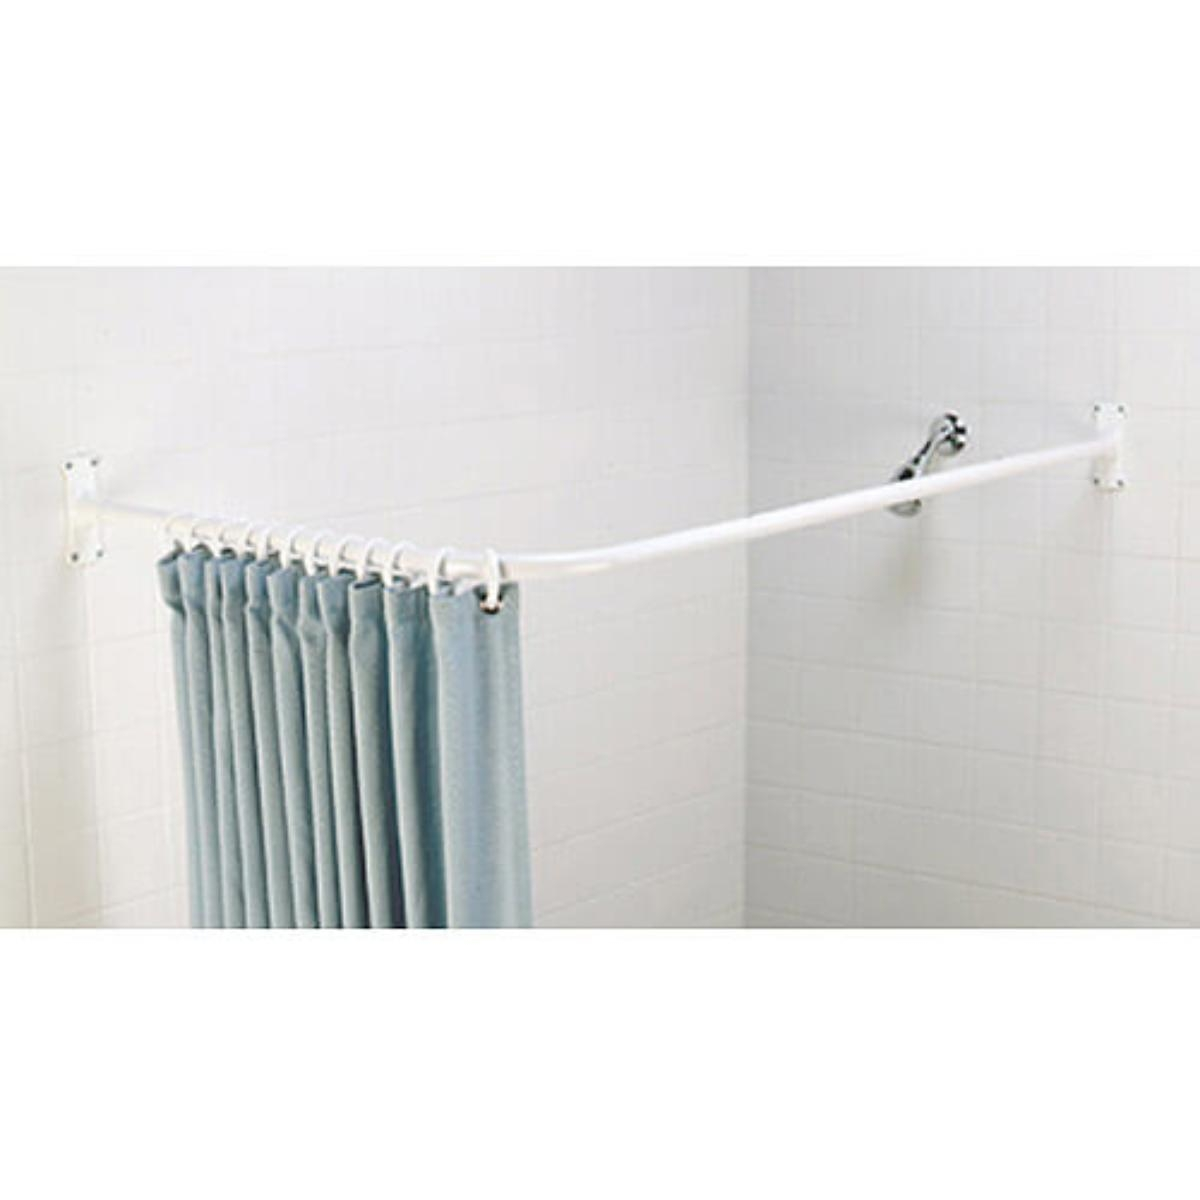 Ordinaire Shower Curtain Rod Holders